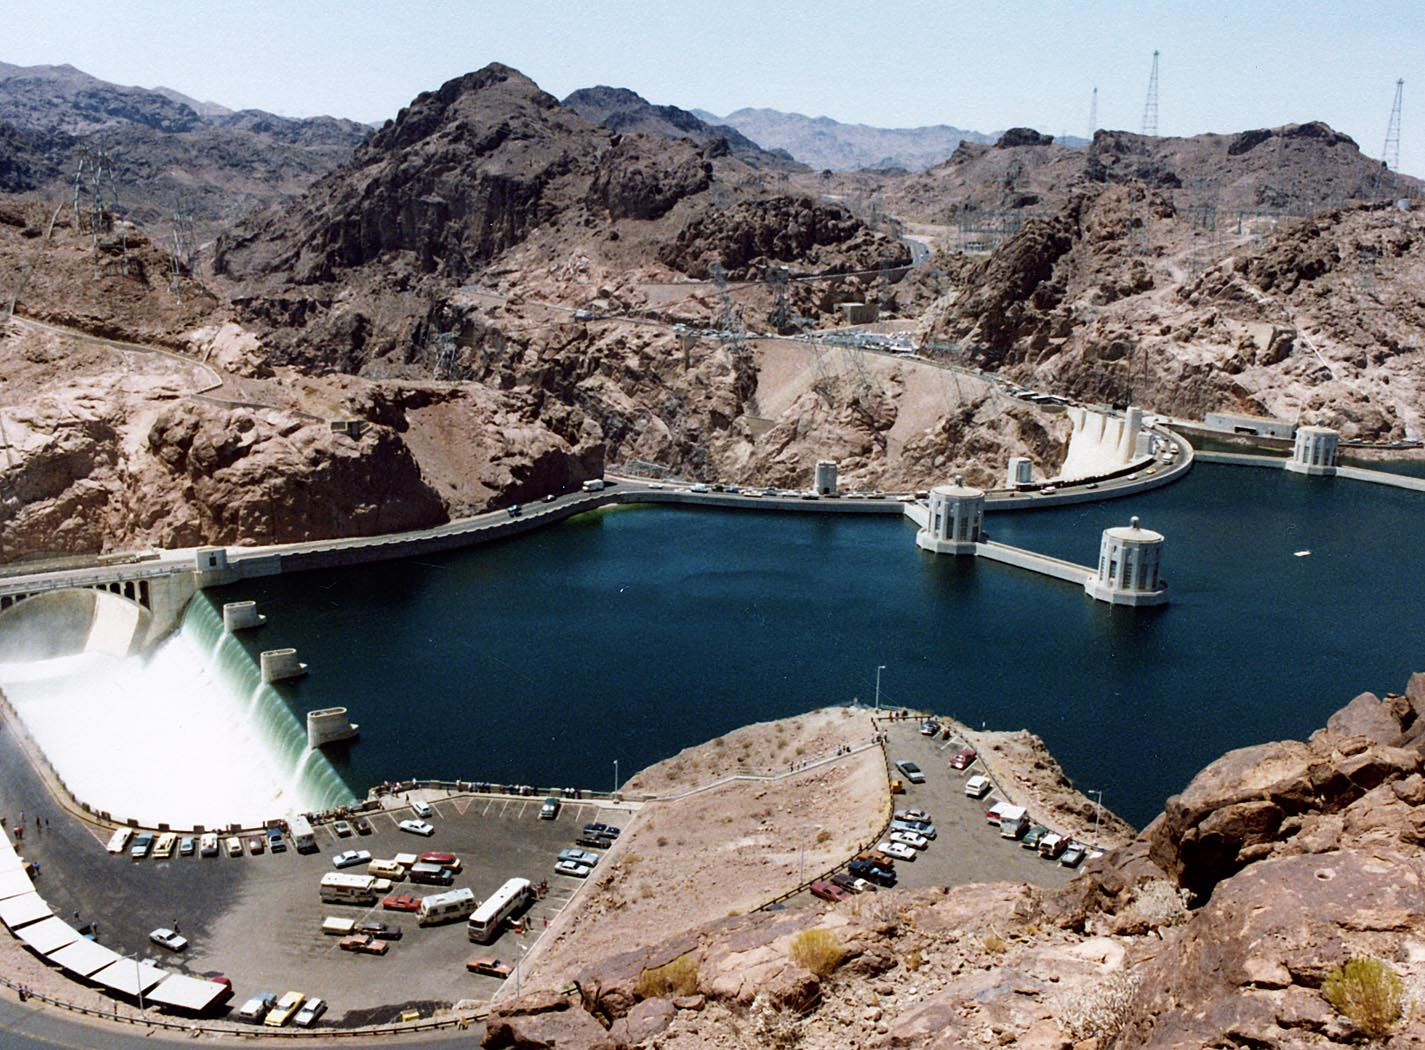 File:Hoover Dam and Arizona Spillway, 1983 jpg - Wikimedia Commons